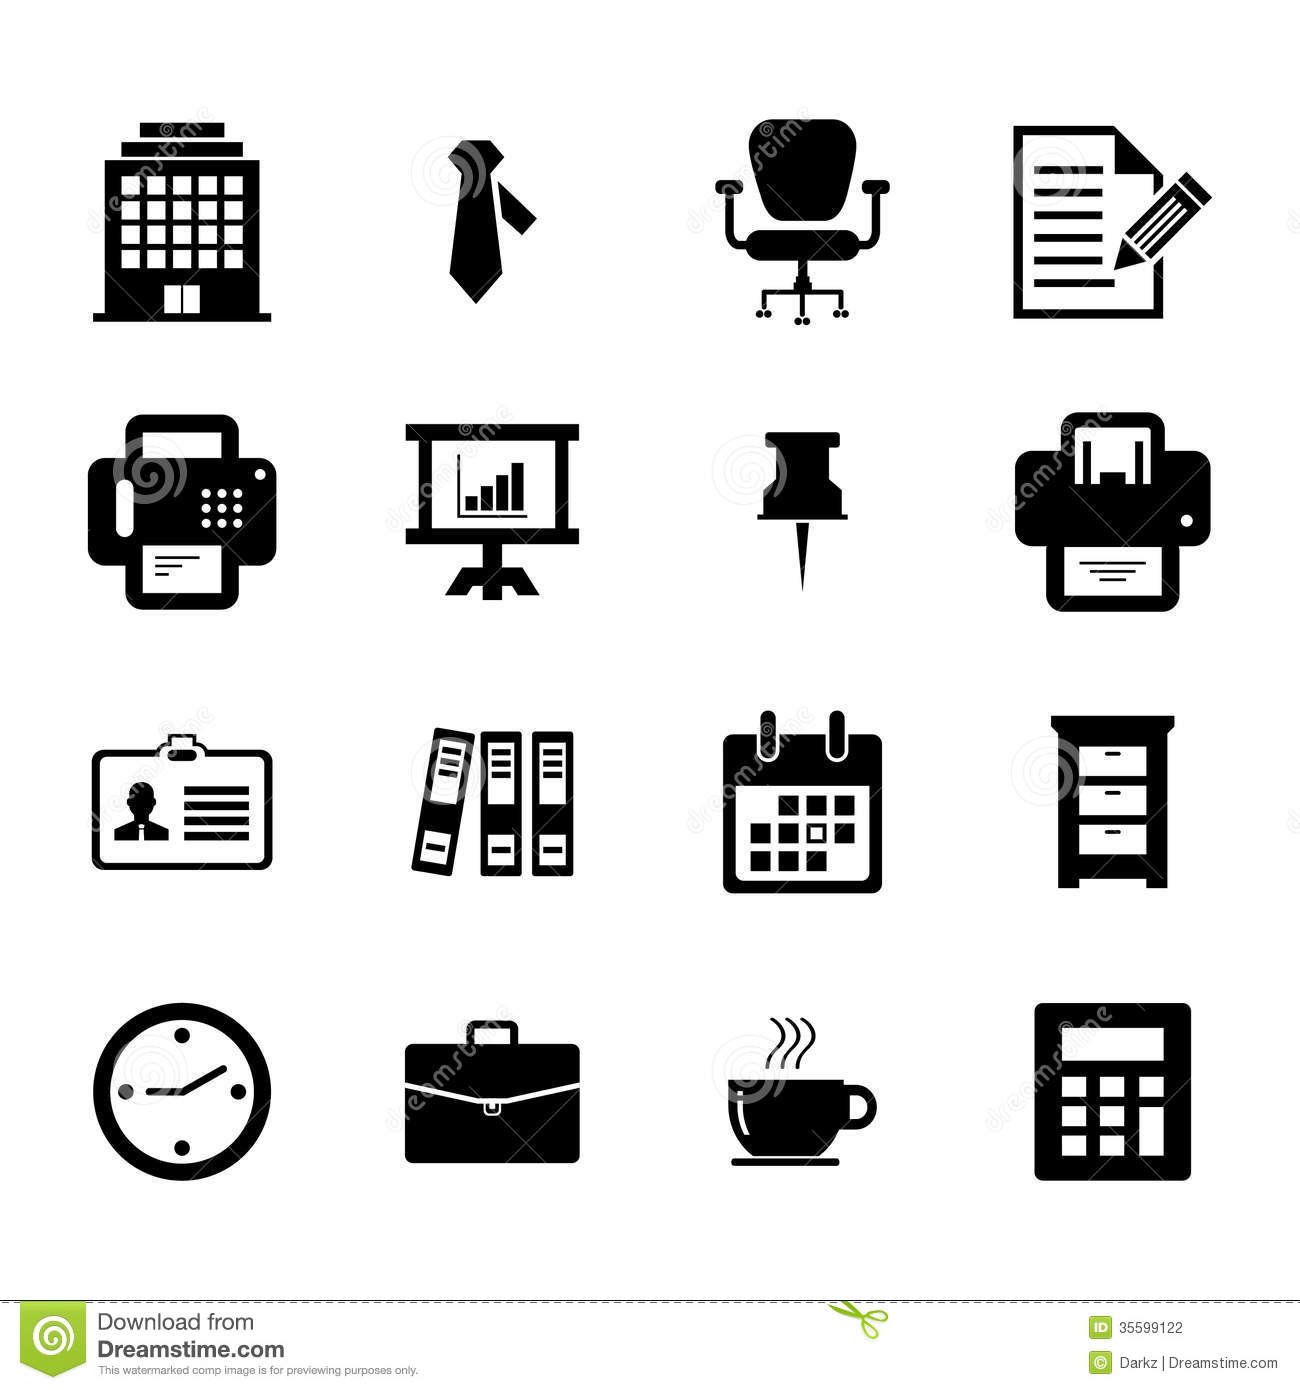 office design file cabinet with Stock Photography Office Icon Set Your Design Image35599122 on E9a9737c0cbdea9e besides Stock Photography Office Icon Set Your Design Image35599122 as well Furniture Raw Traditional Full Wrap Wood Bookcases further Fcd5a38c79047c13 likewise position.